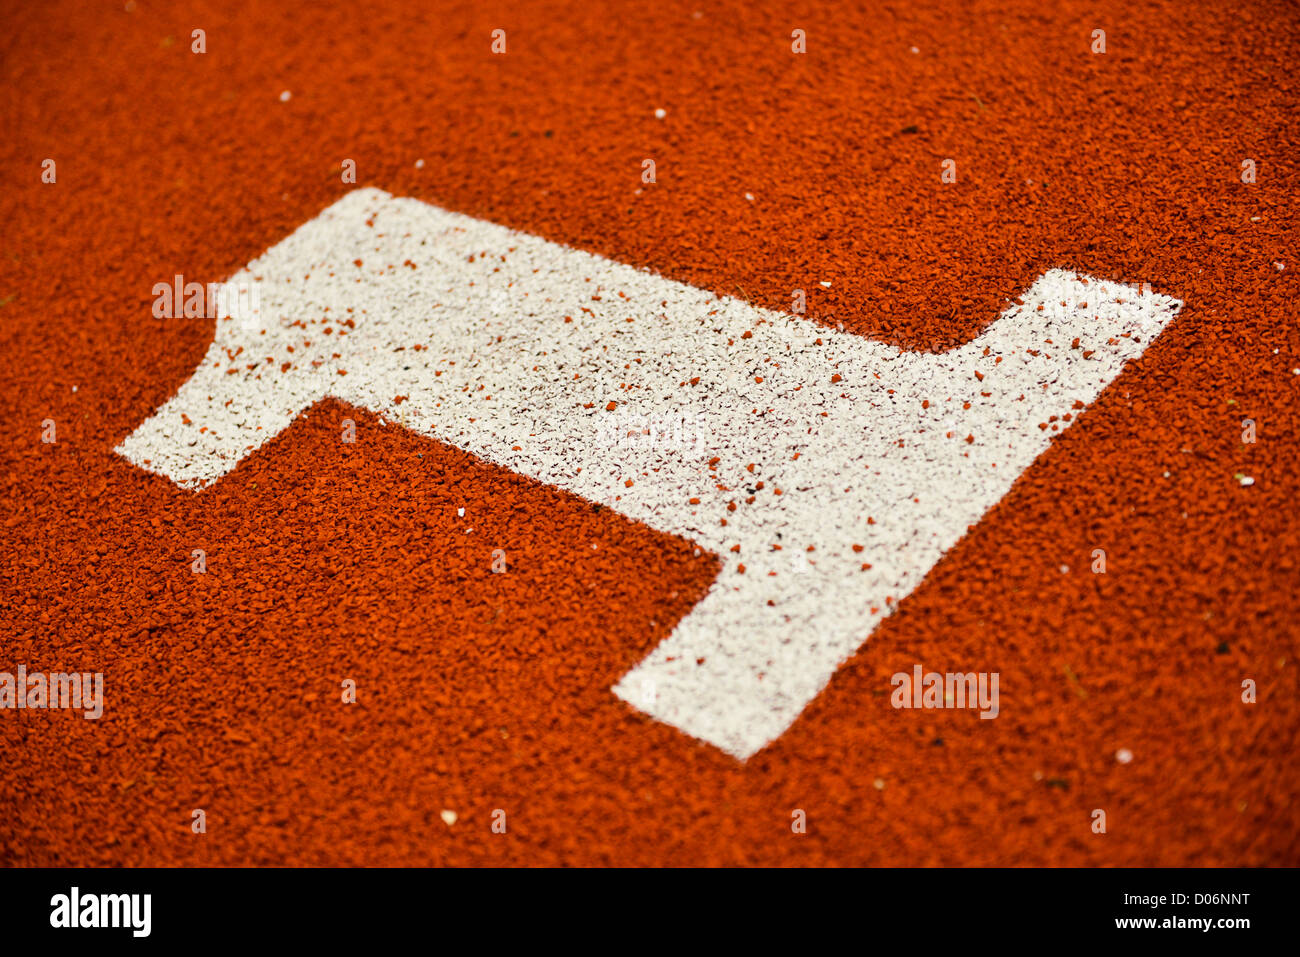 Number one lane on a running track - Stock Image